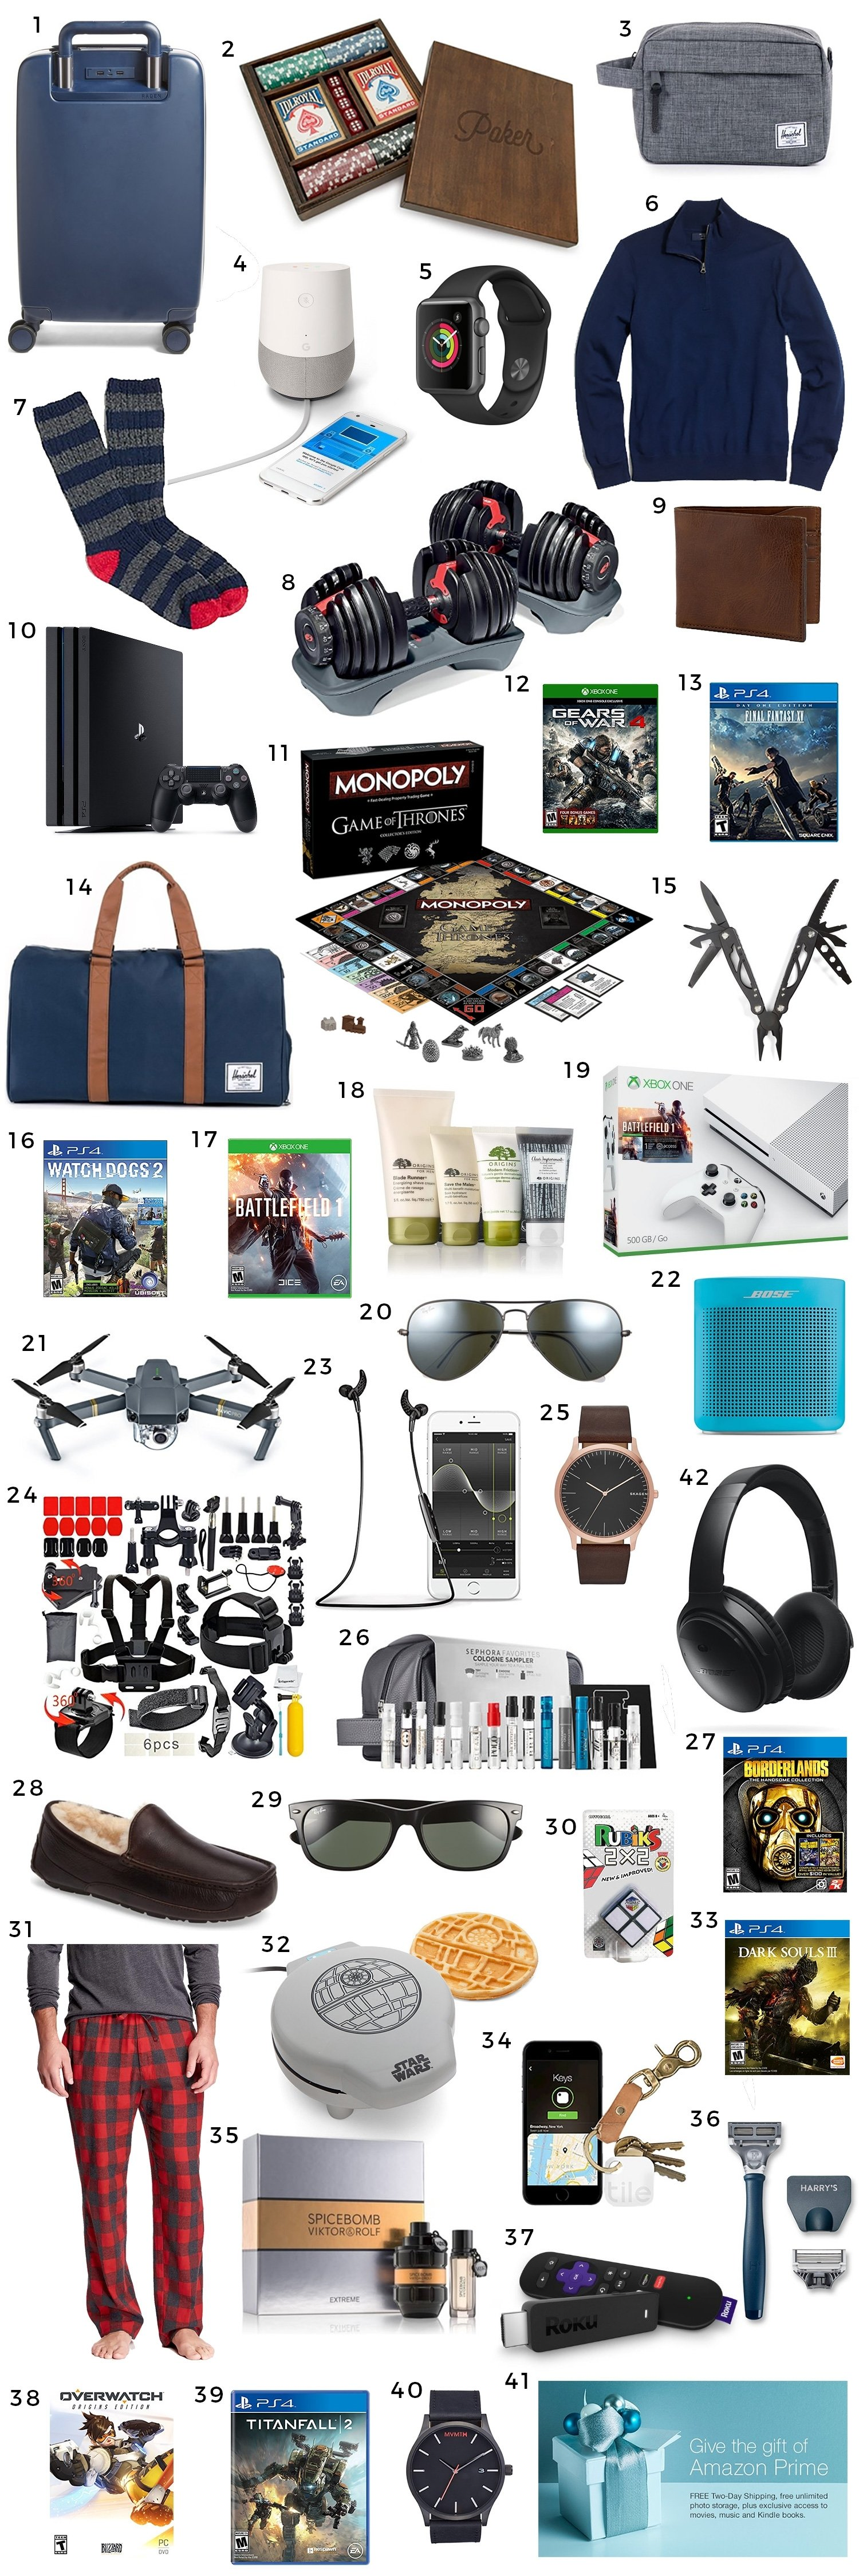 10 Most Popular Christmas Gift Idea For Men the best christmas gift ideas for men ashley brooke nicholas 8